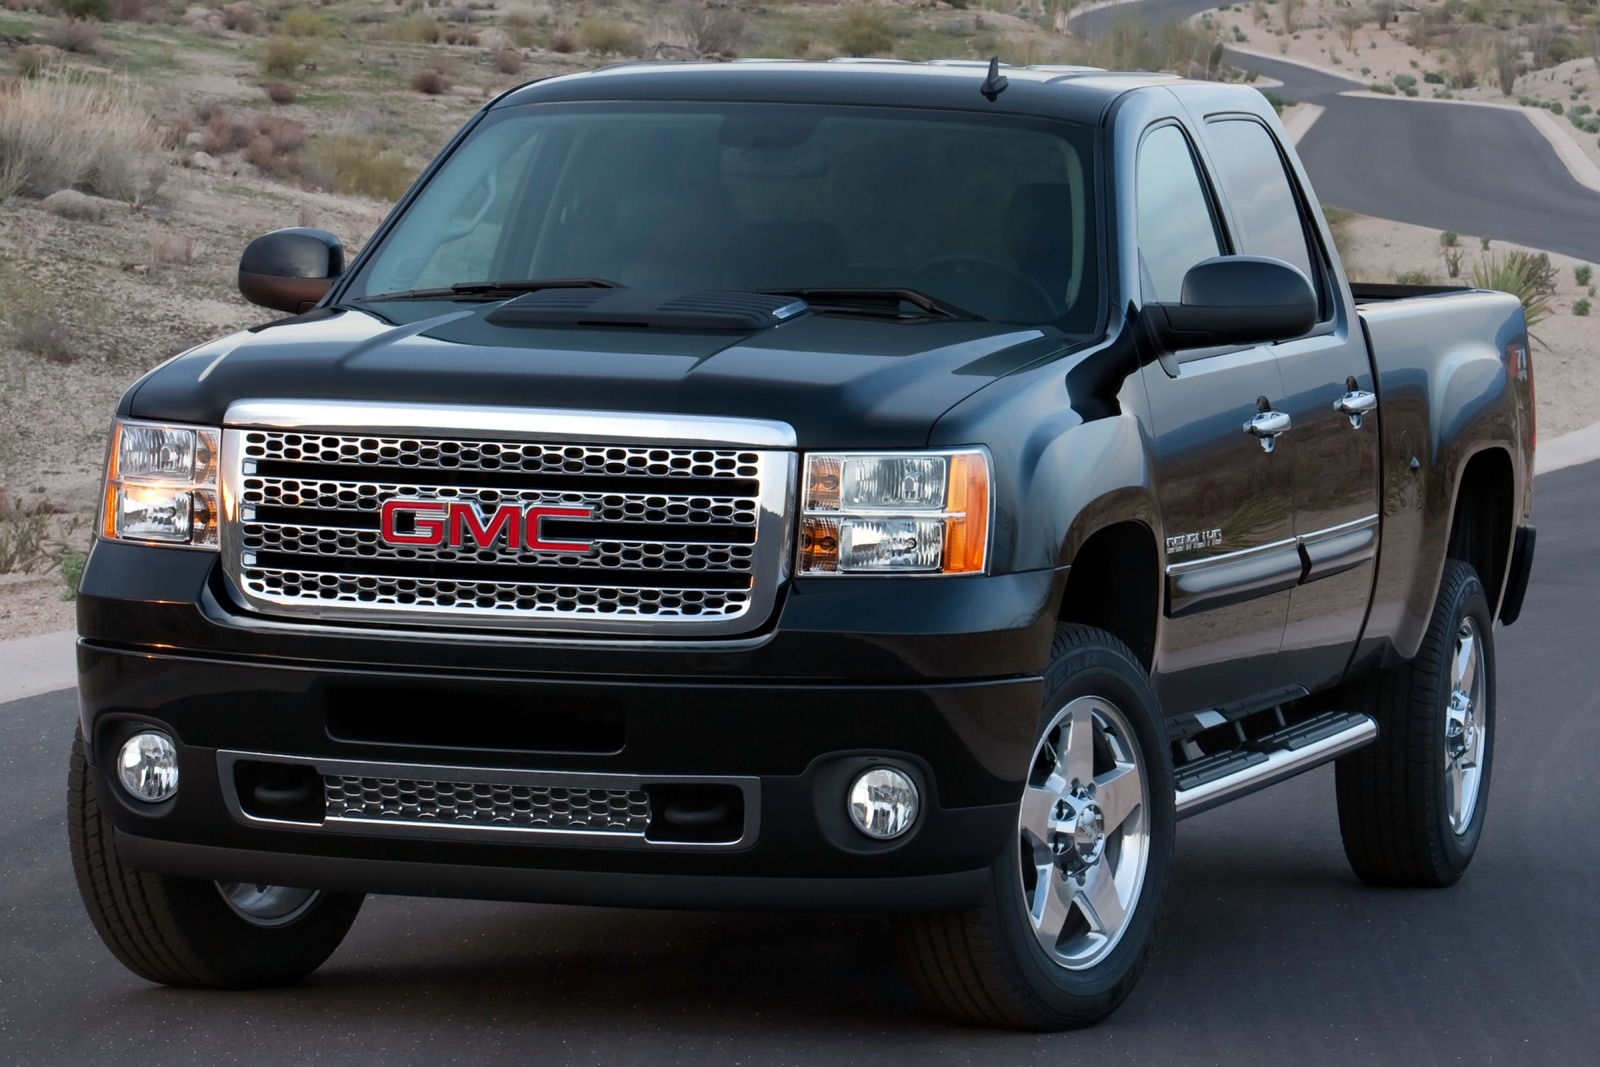 2014 gmc sierra 2500hd image 2. Black Bedroom Furniture Sets. Home Design Ideas